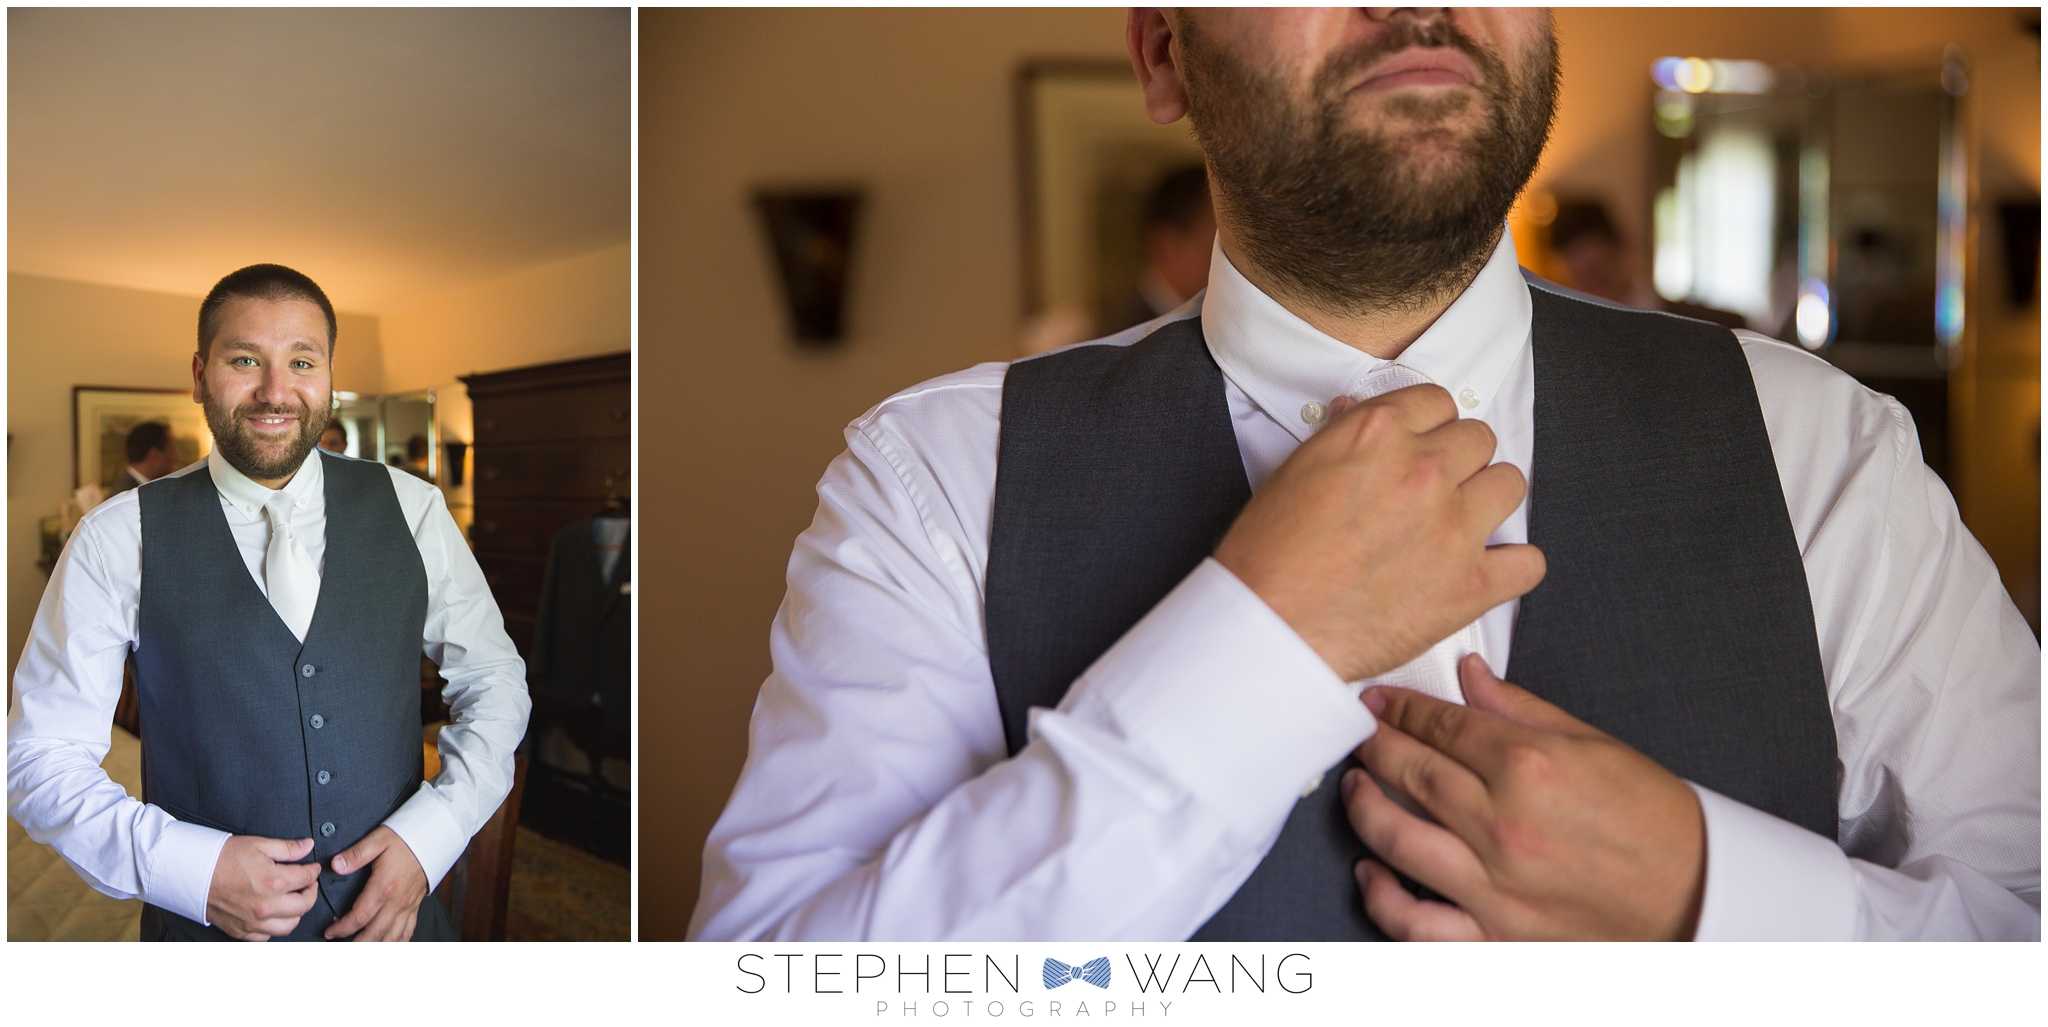 Stephen Wang Photography Connecticut photographer CT Candlelight Farms Inn New Milford CT Summer Wedding New Haven-11-10_0007.jpg